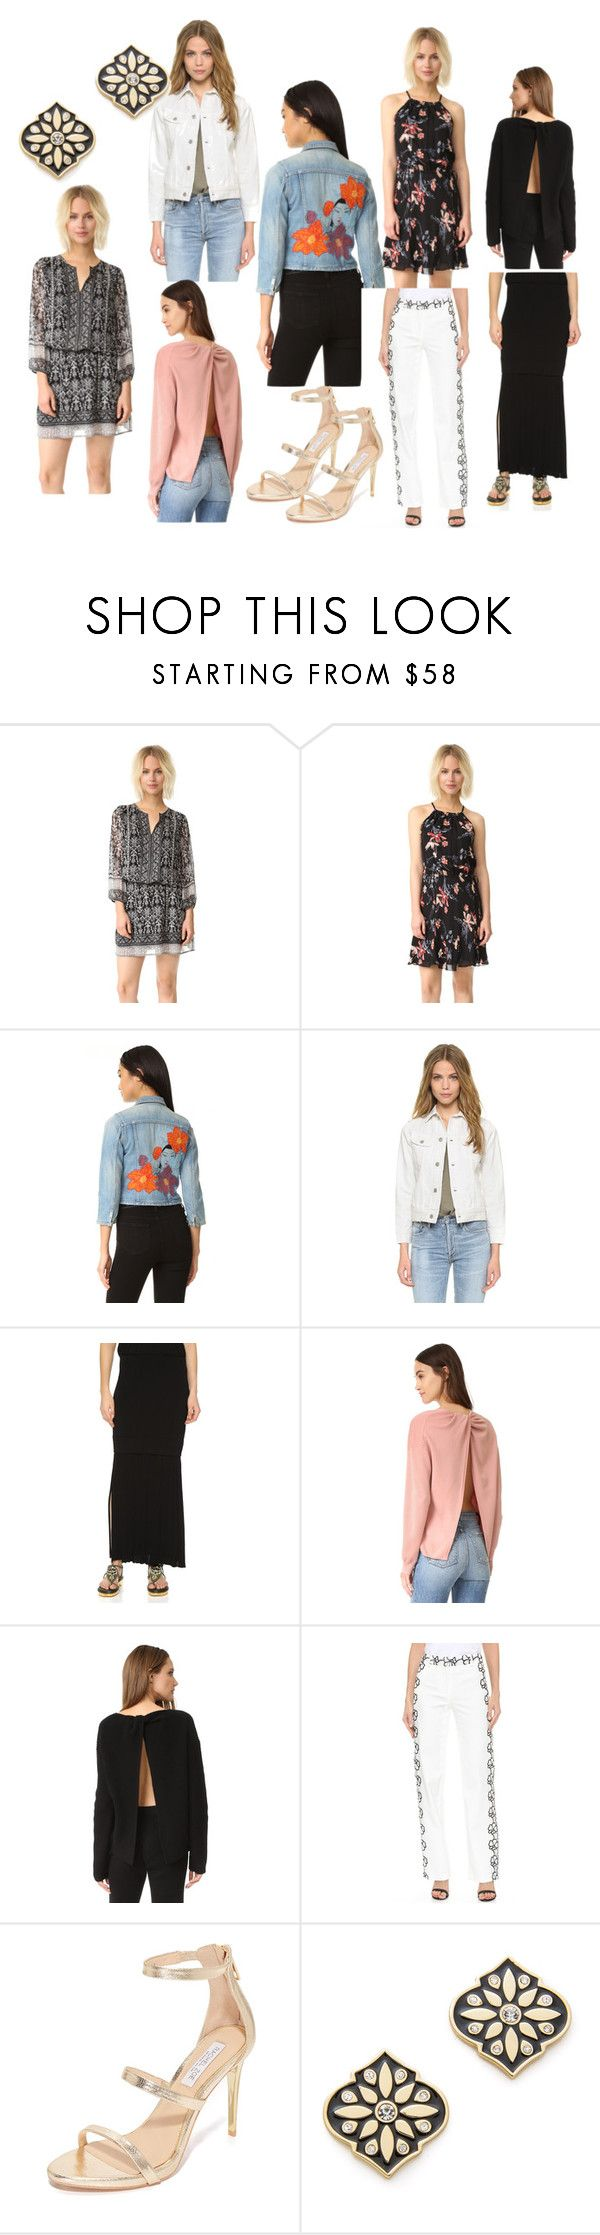 """fashion collection sale"" by monica022 ❤ liked on Polyvore featuring Joie, Citizens of Humanity, Josh Goot, Theory, Emanuel Ungaro, Rachel Zoe, Kate Spade and vintage"